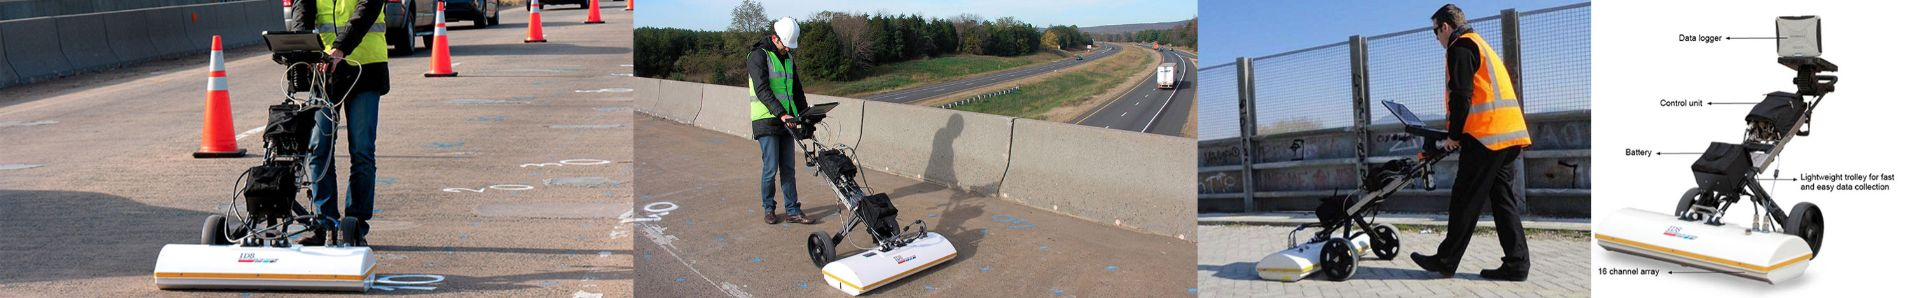 RIS Hi Bright Bridge Inspection GPR